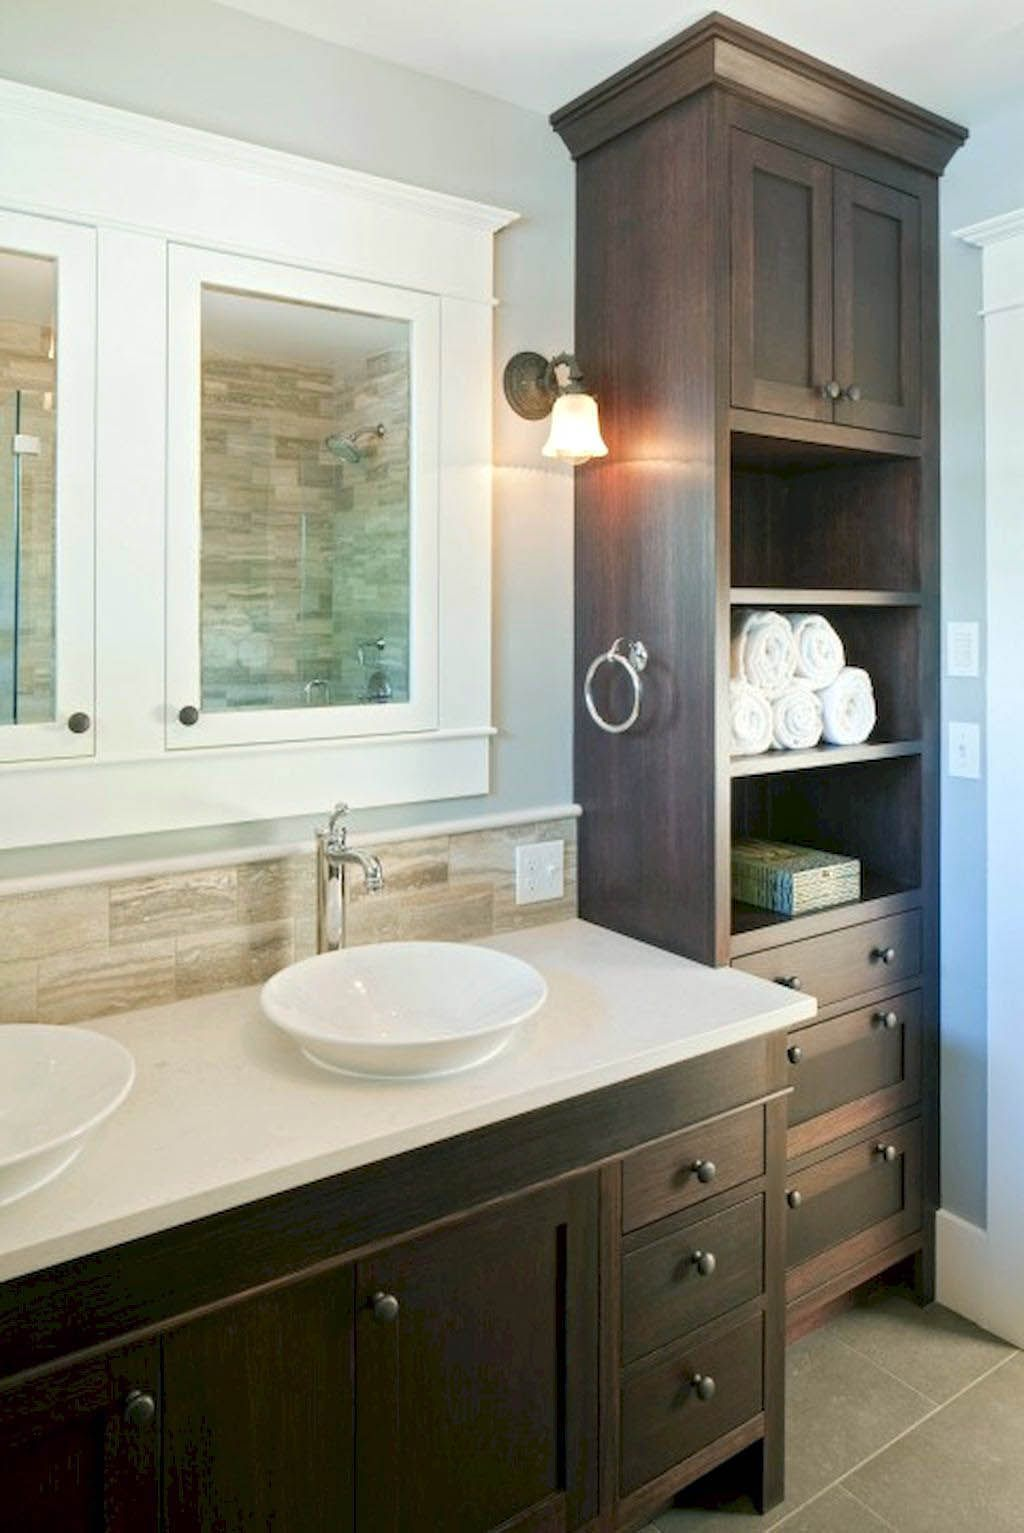 Fabulous Bathroom Cabinet Ideas For Storage For Your Home Built